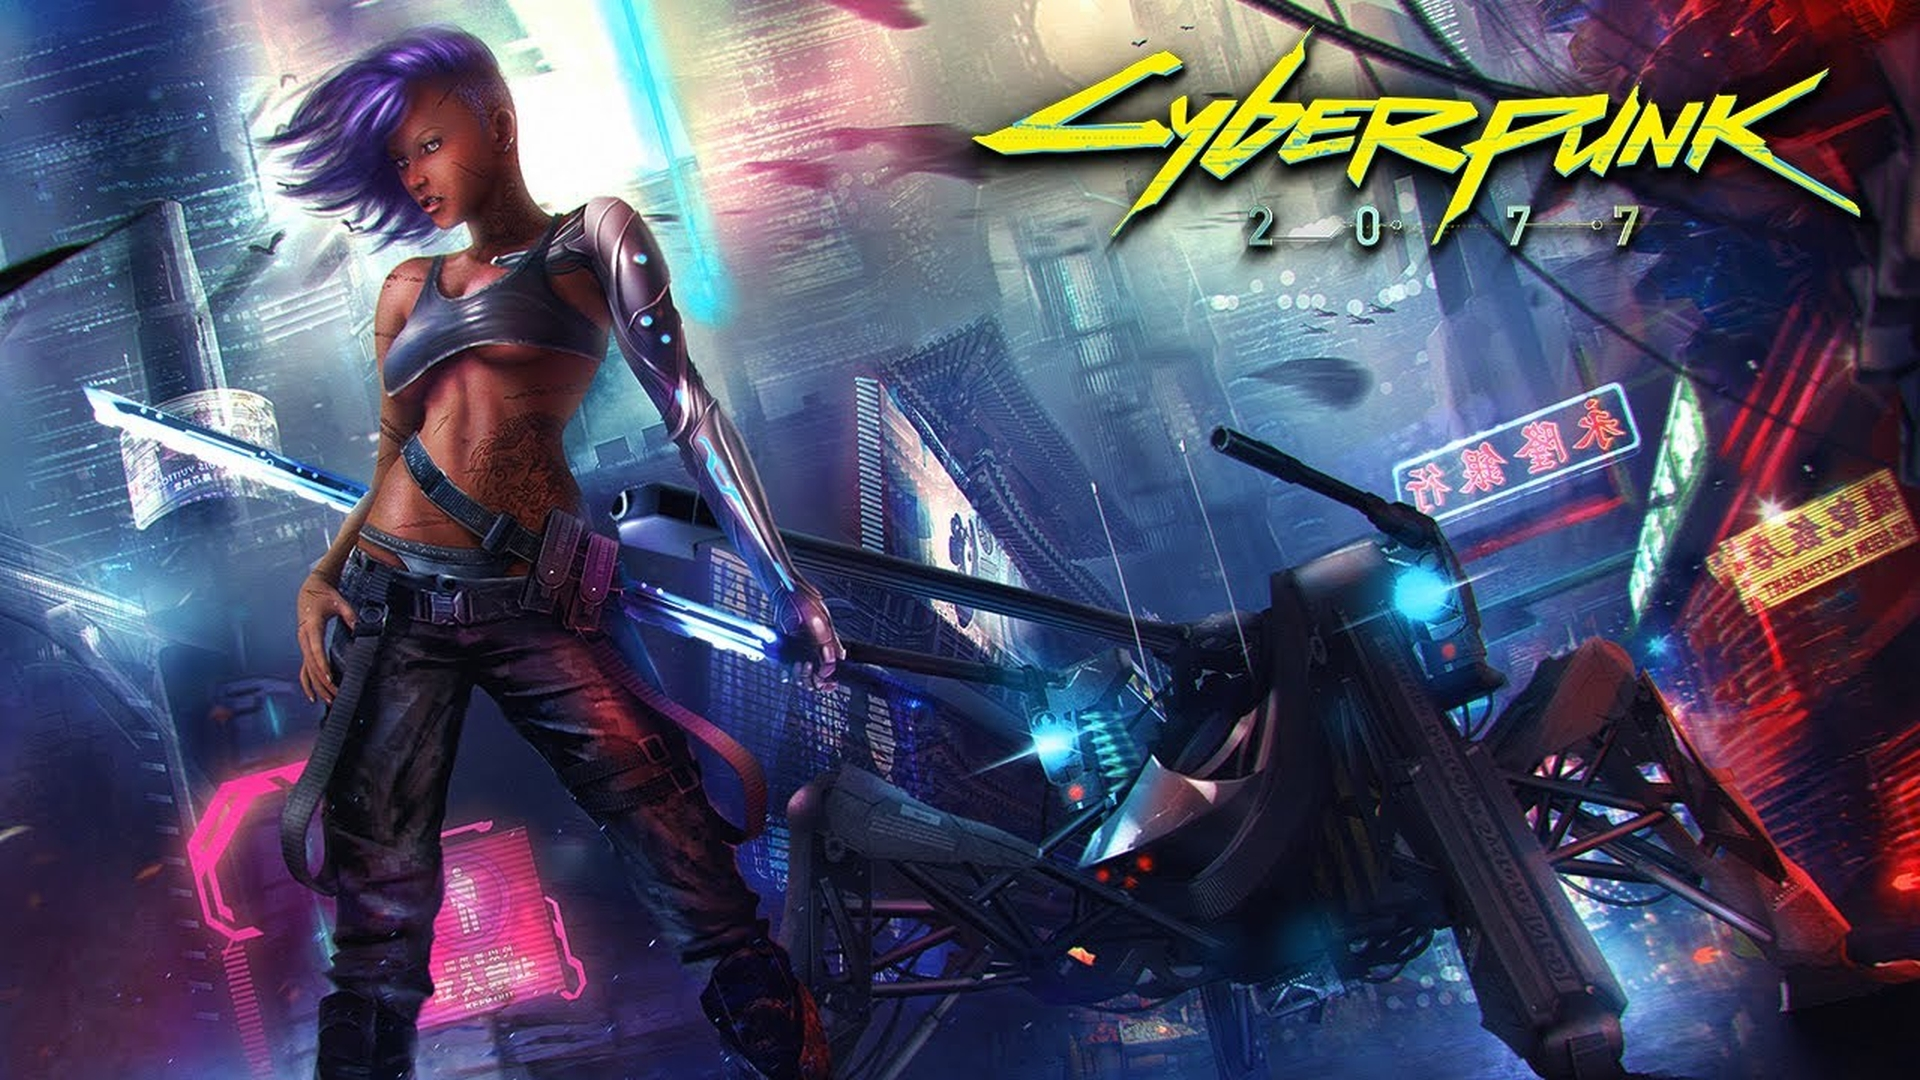 Cyberpunk 2077 is a RPG set in the corrupt and techadvanced world of the year 2077